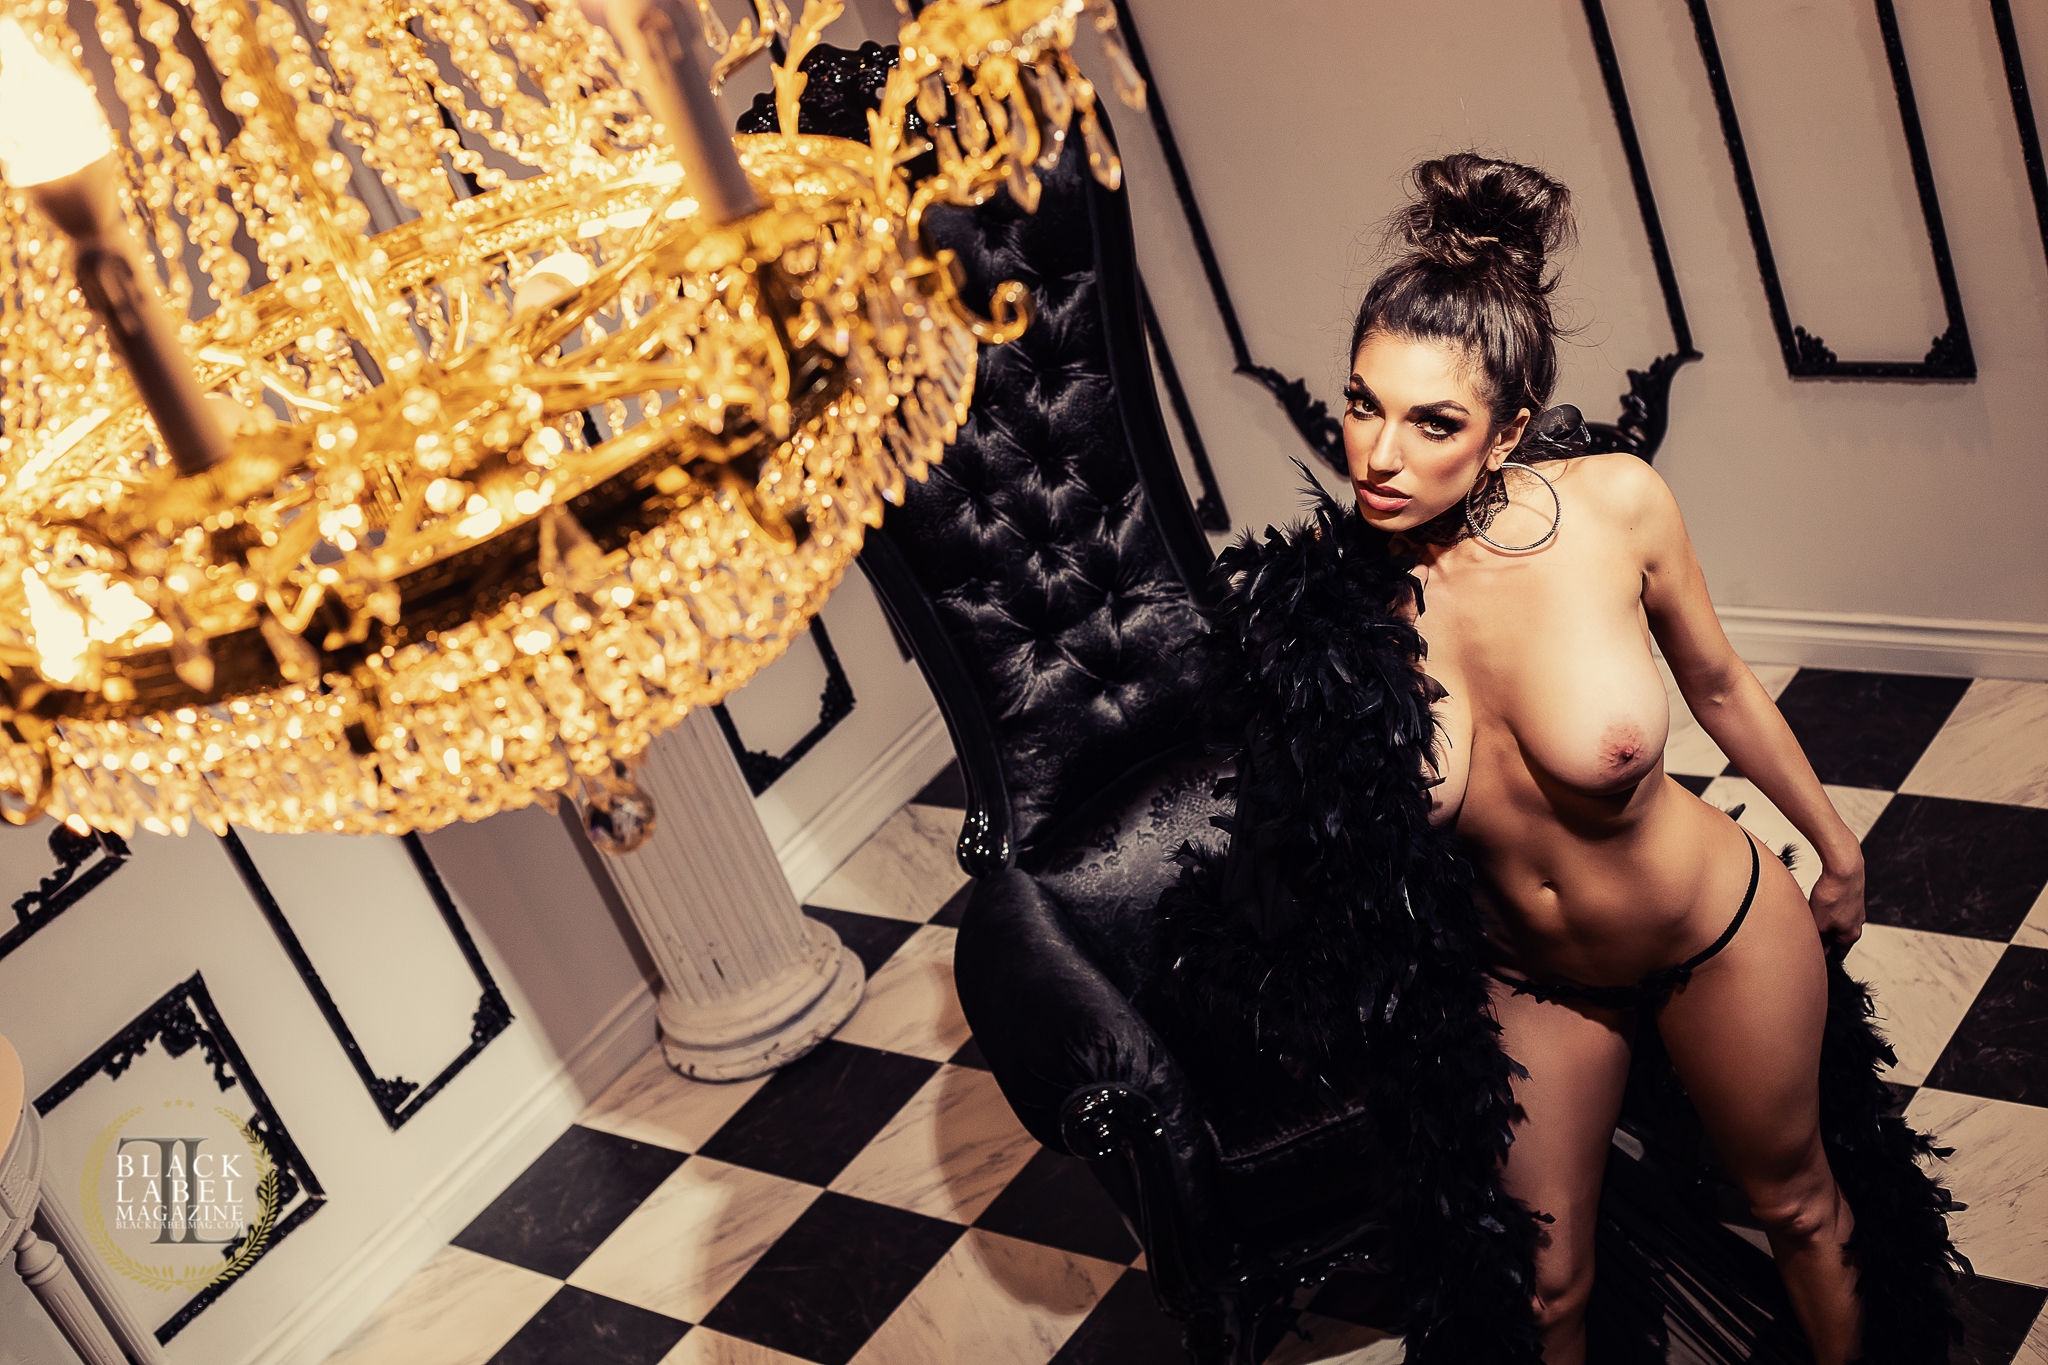 Darcie Dolce, pussy masturbation, big tits, busty babes, exotic women, nude art, nude women, sexy women